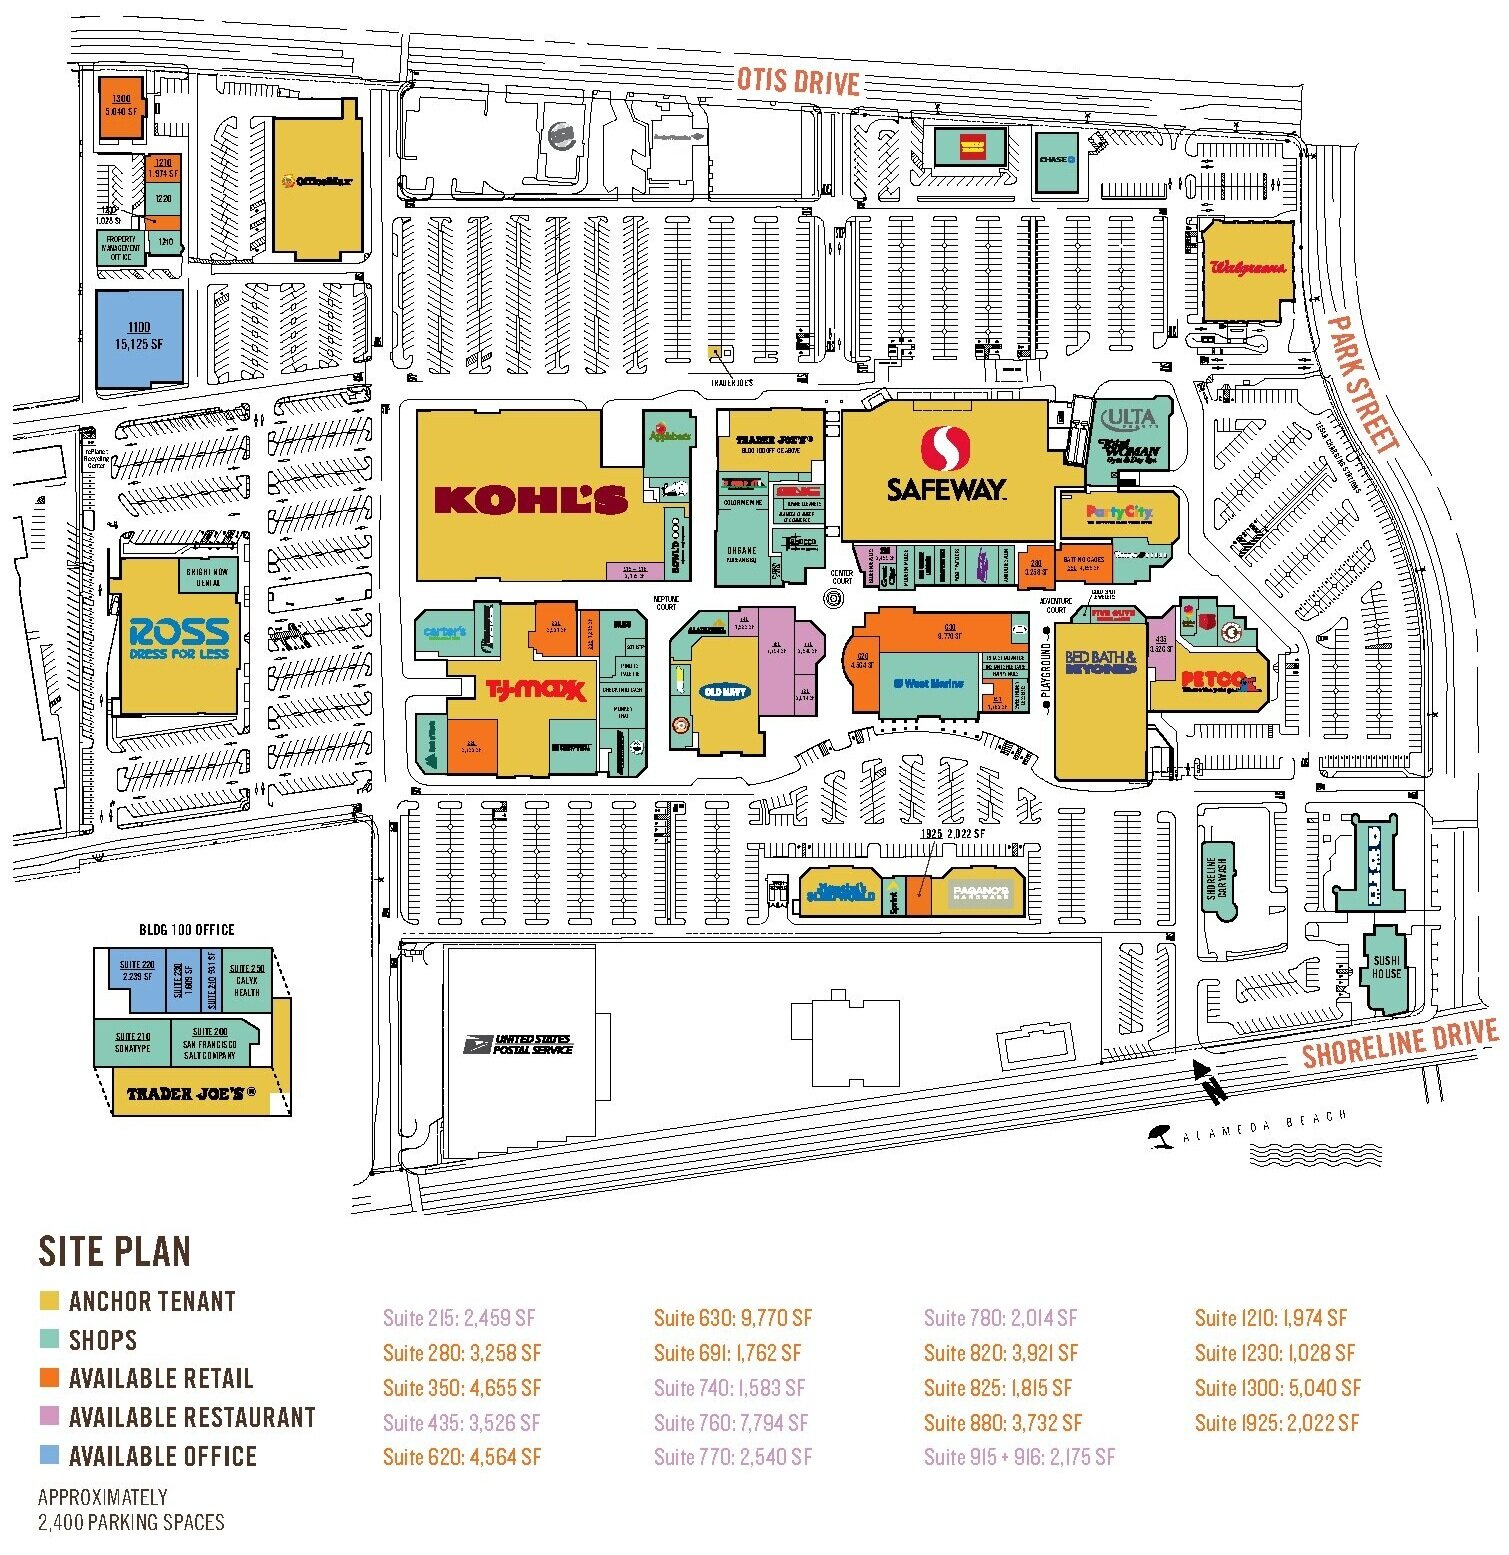 Alameda South Shore Center site plan showing anchor tenants, shops, available retail, available restaurant, and available office spaces on the map with a key indicating square footage of available retail and restaurant spaces.